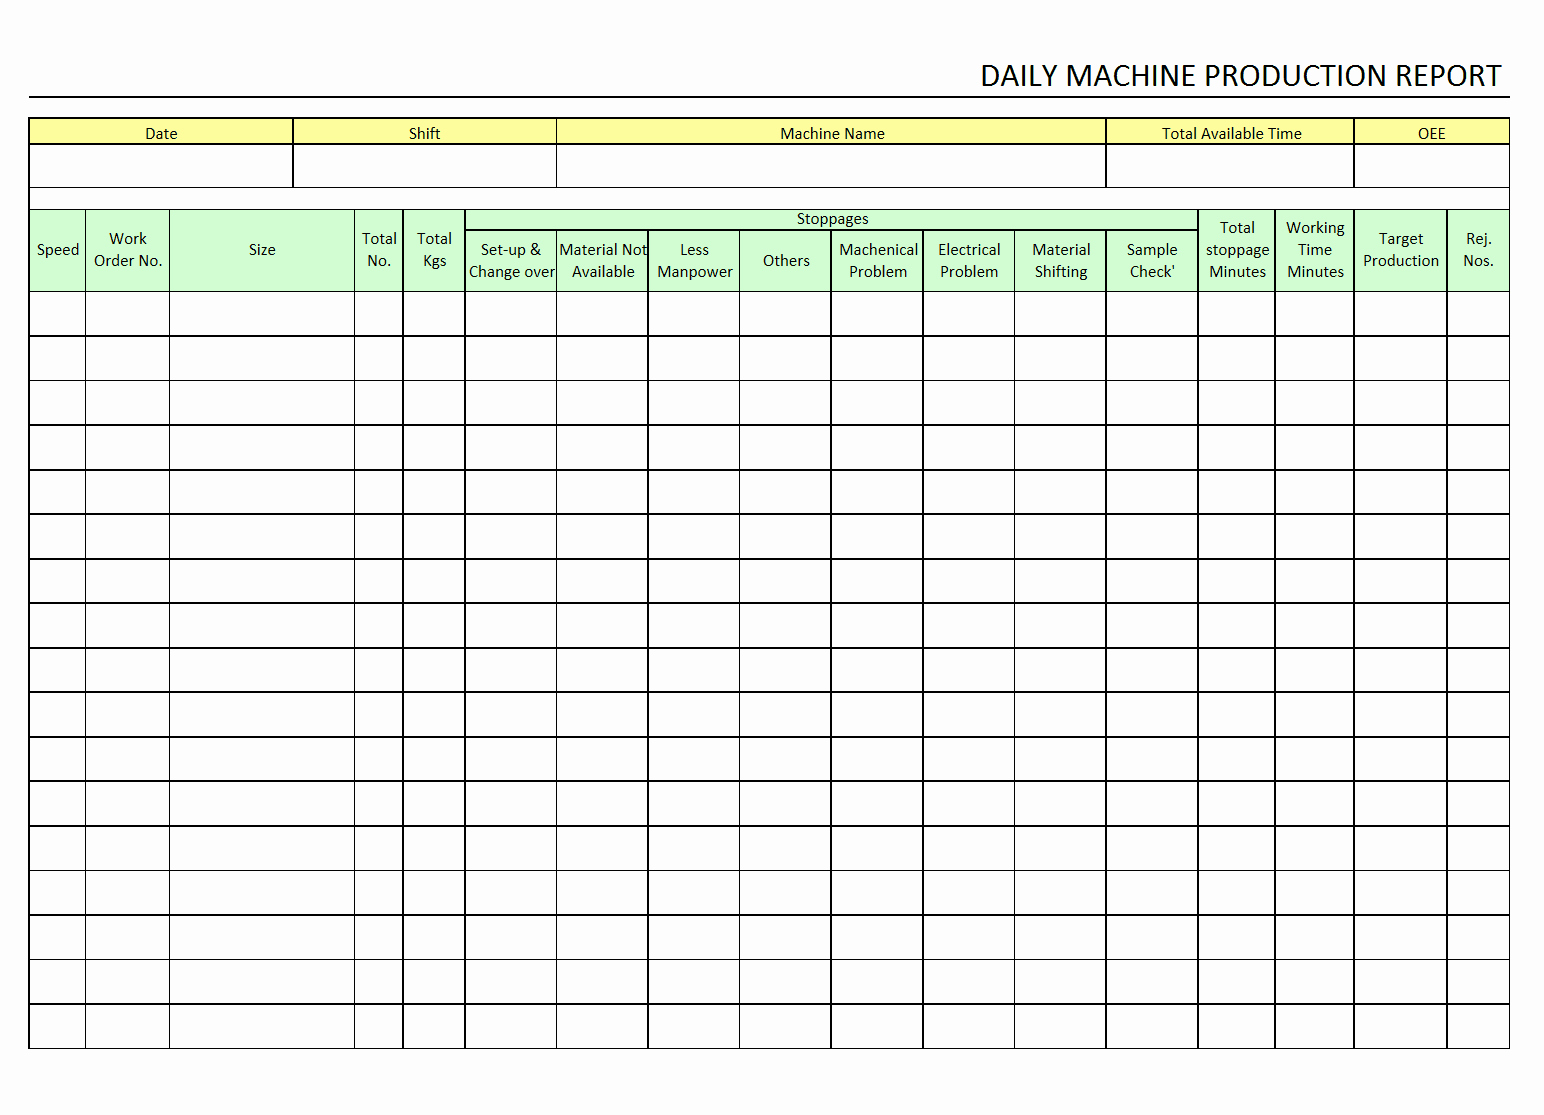 Daily Production Report Template Excel New Daily Machine Production Report format Excel Pdf